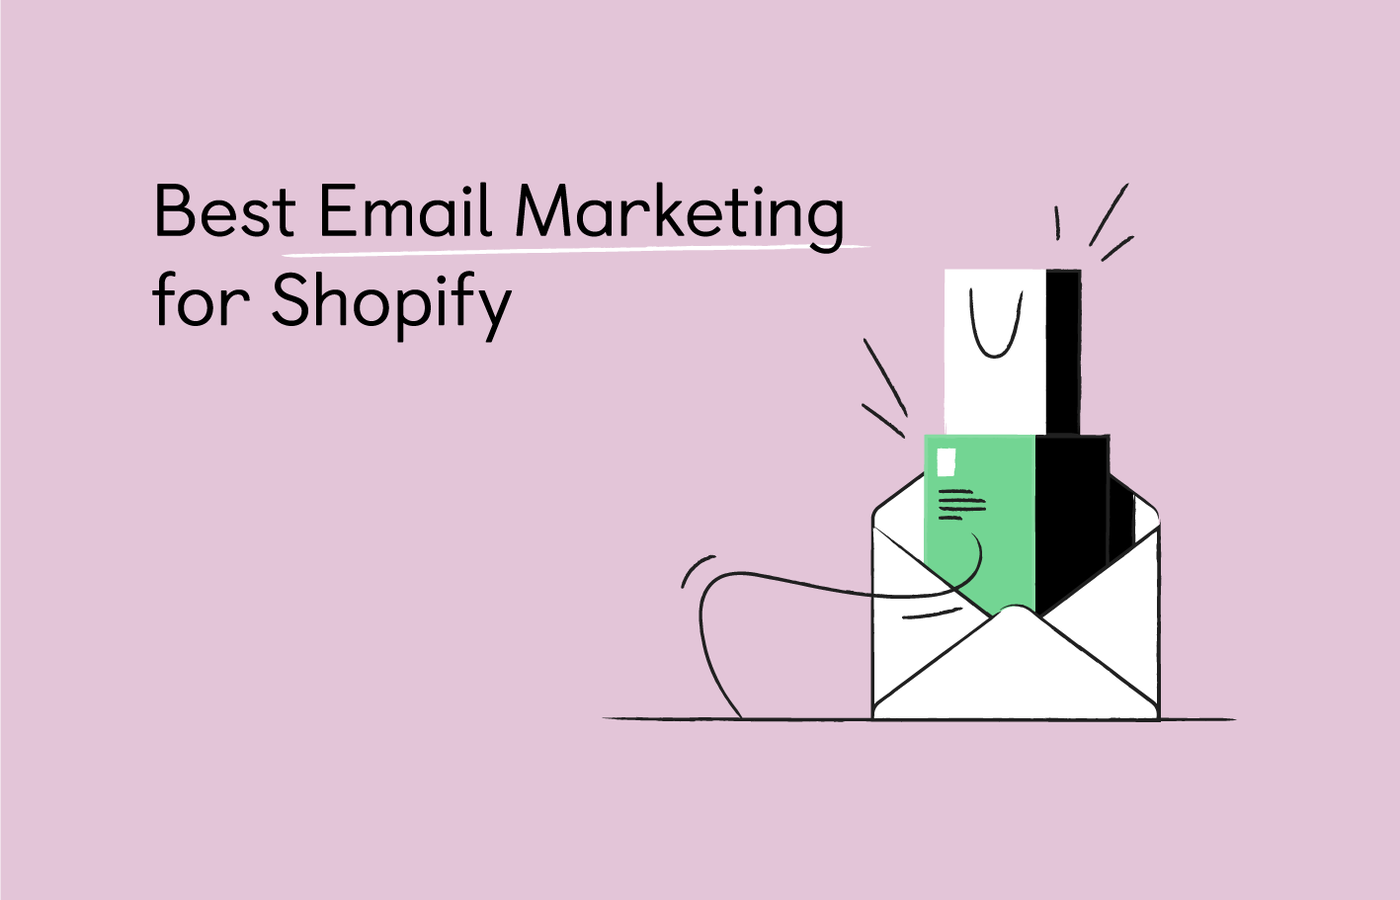 Best Email Marketing Apps for Shopify: 11 Apps Reviewed